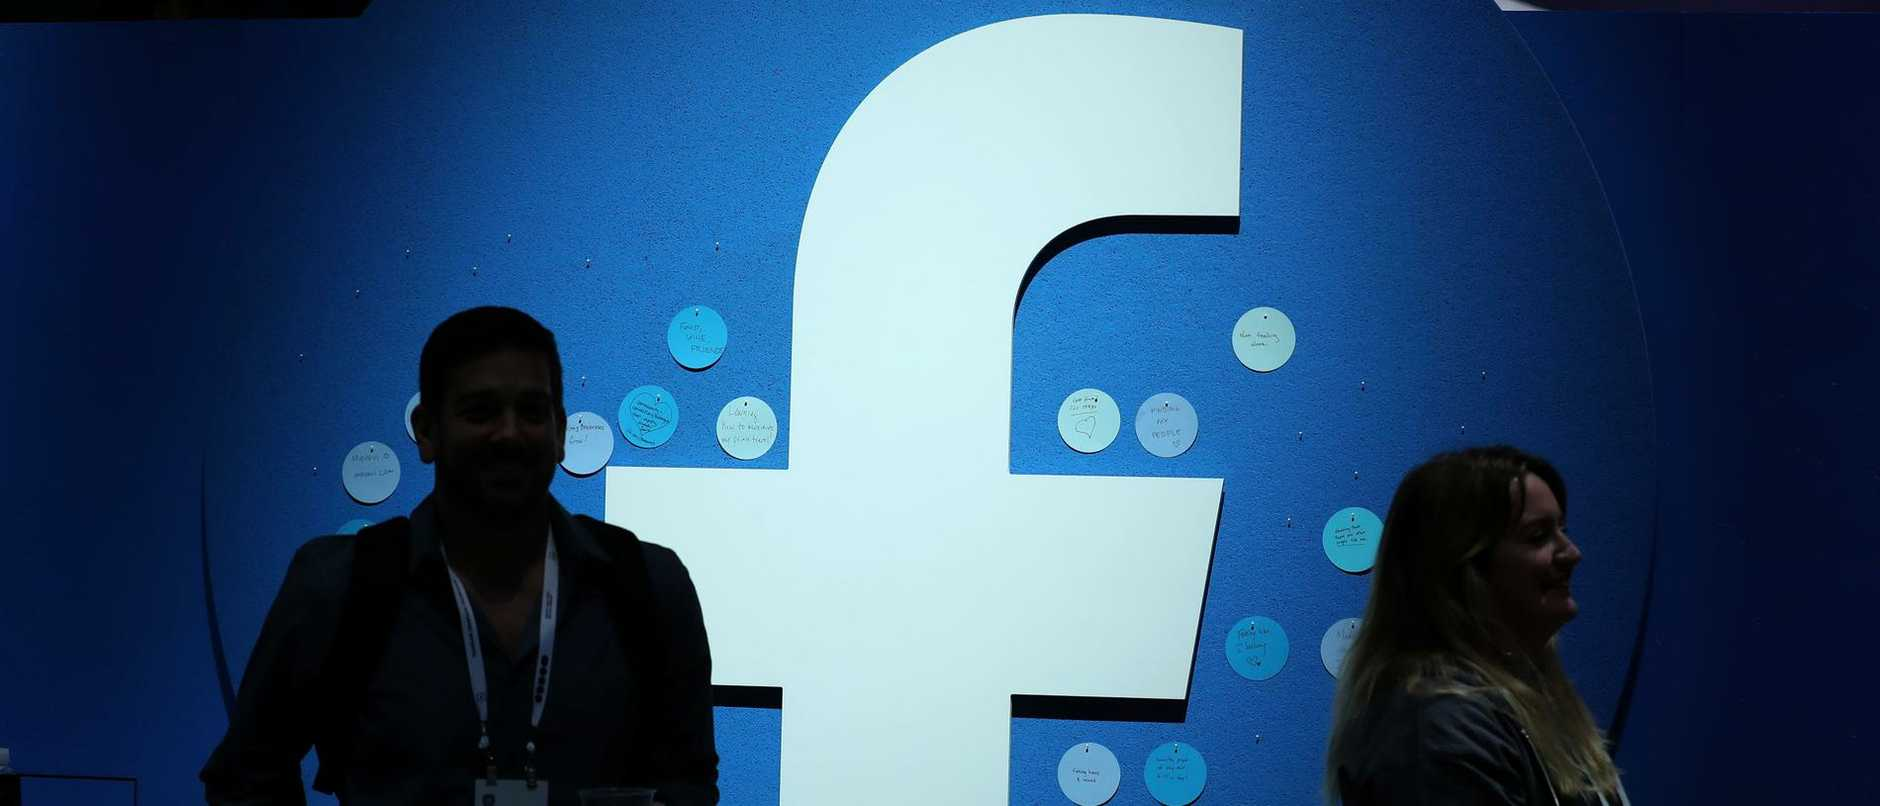 Facebook and Google must pay for news and should not be able to evade new laws, media argues